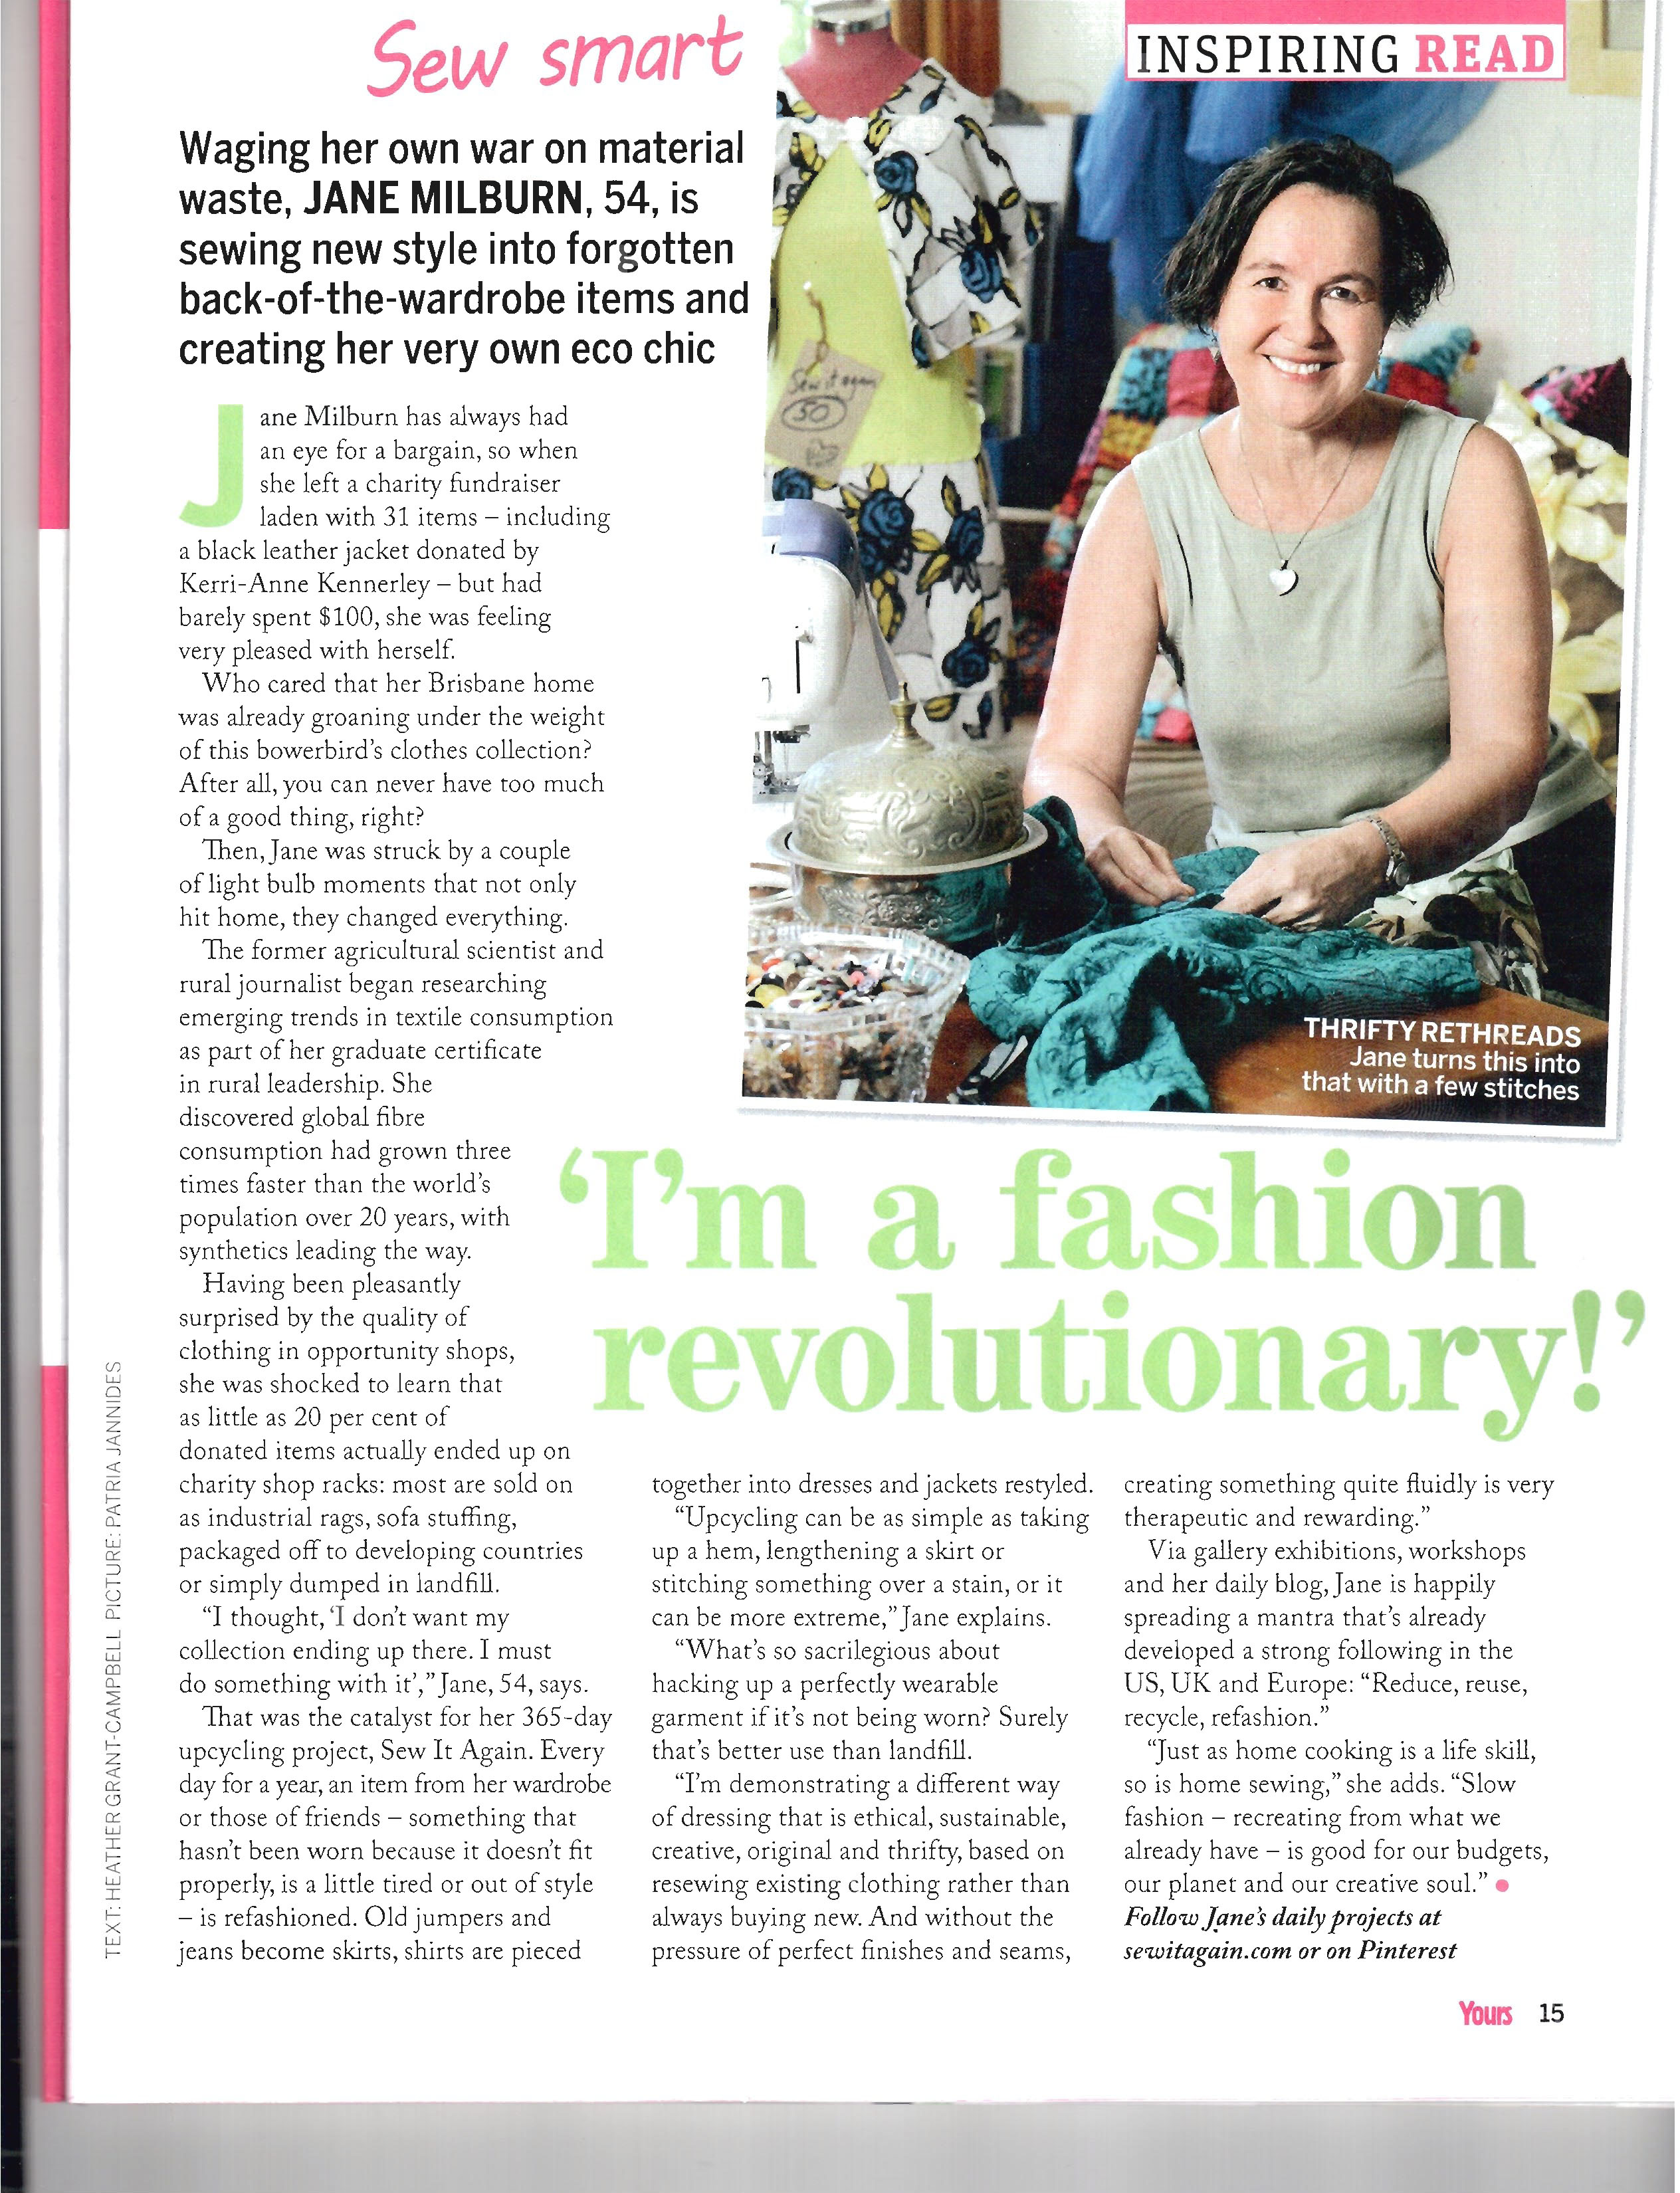 Yours magazine October 2014 page 15